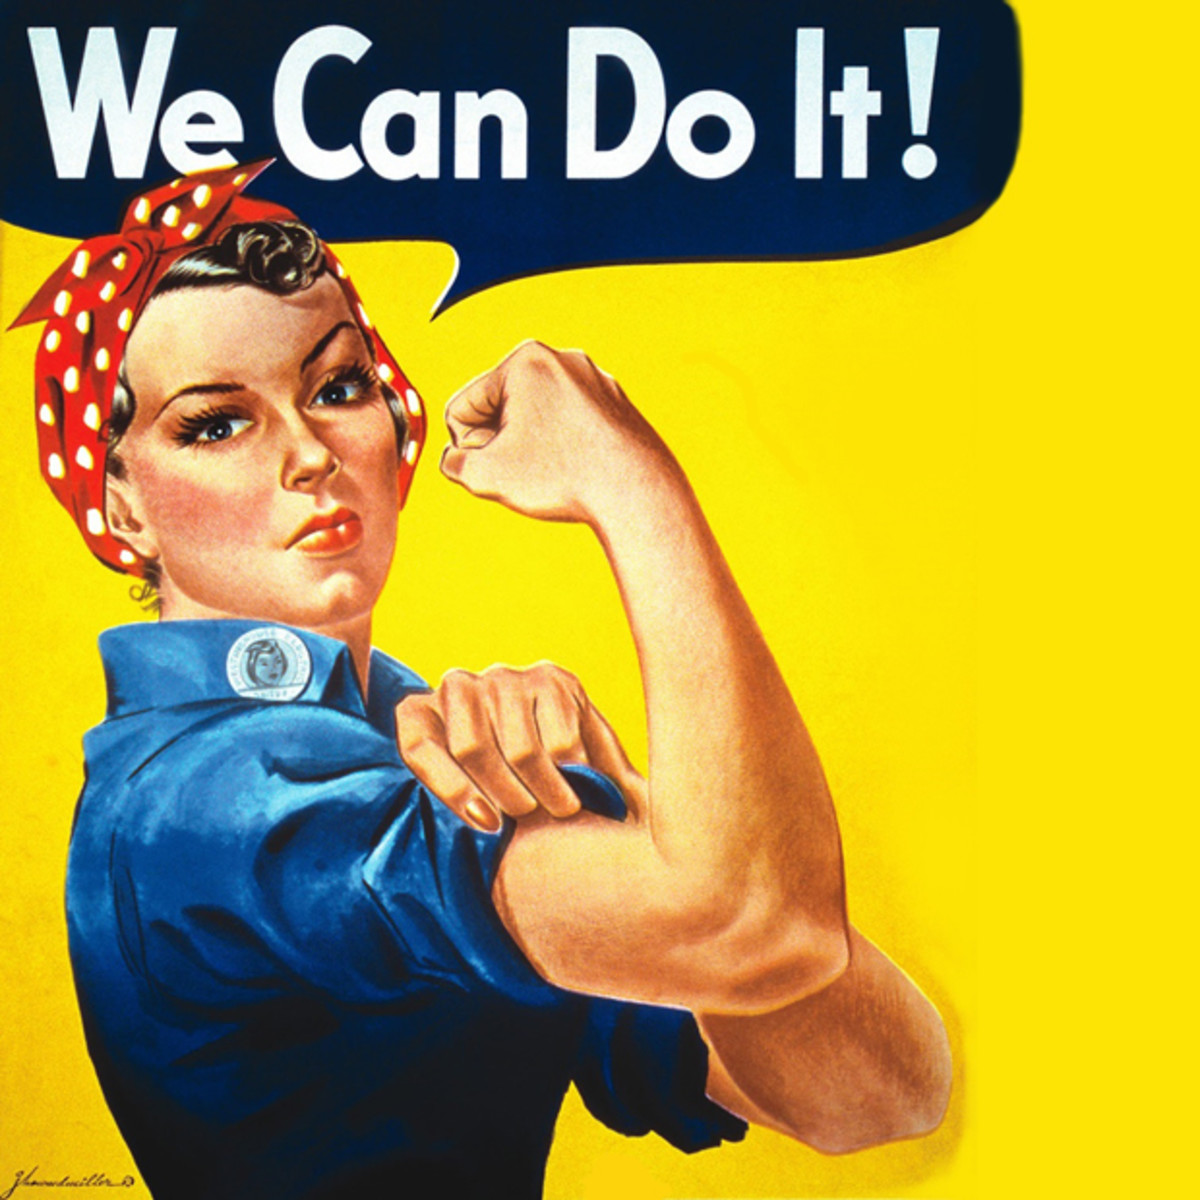 We-Can-Do-It-Rosie-the-Riveter-Wallpaper-2.jpg